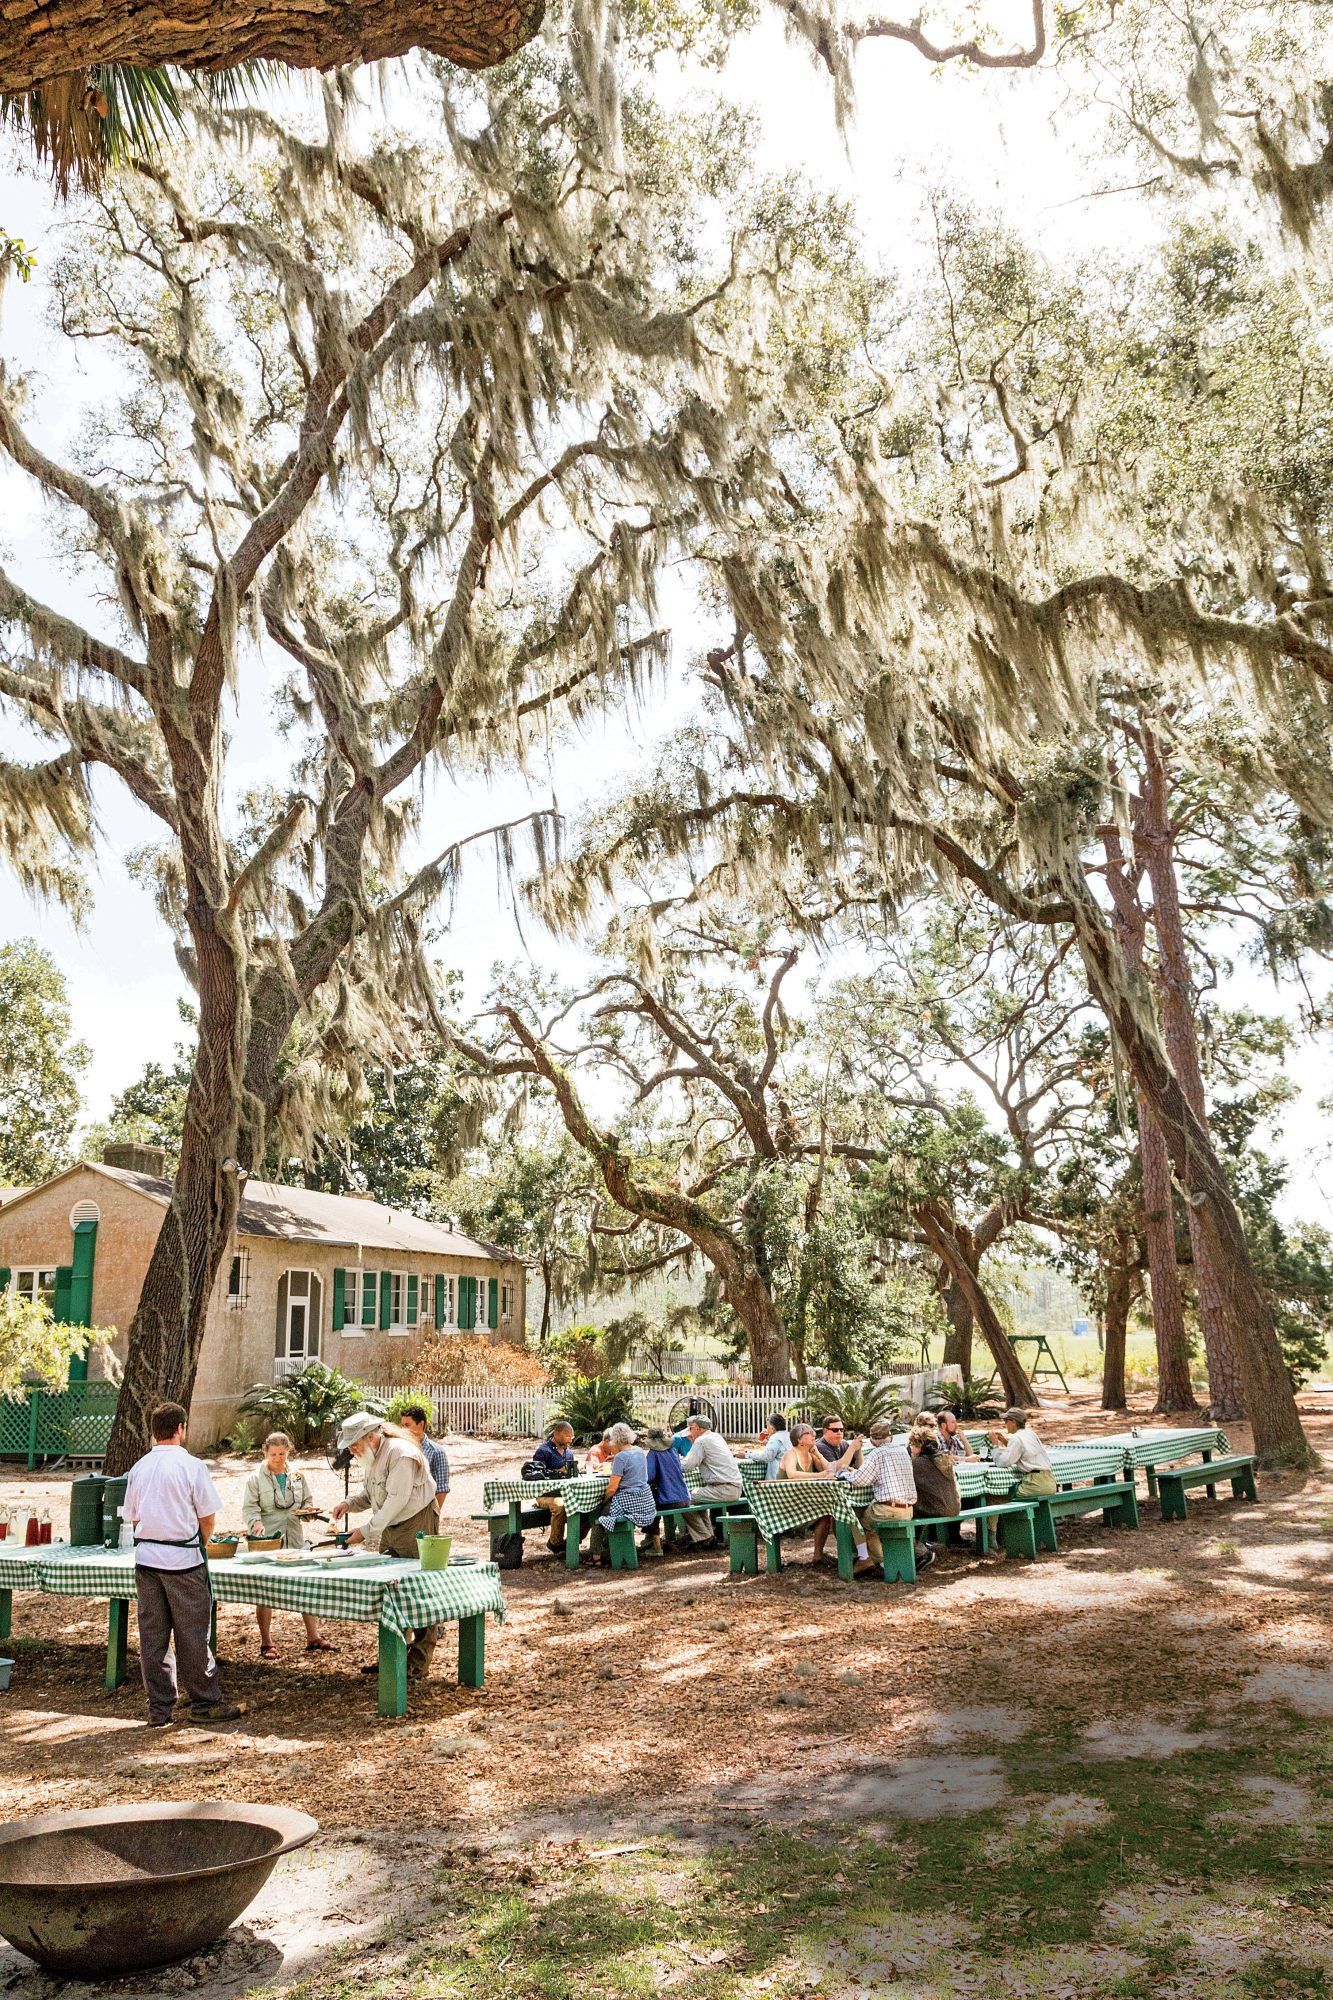 Lodge on Little St. Simons Island in Georgia